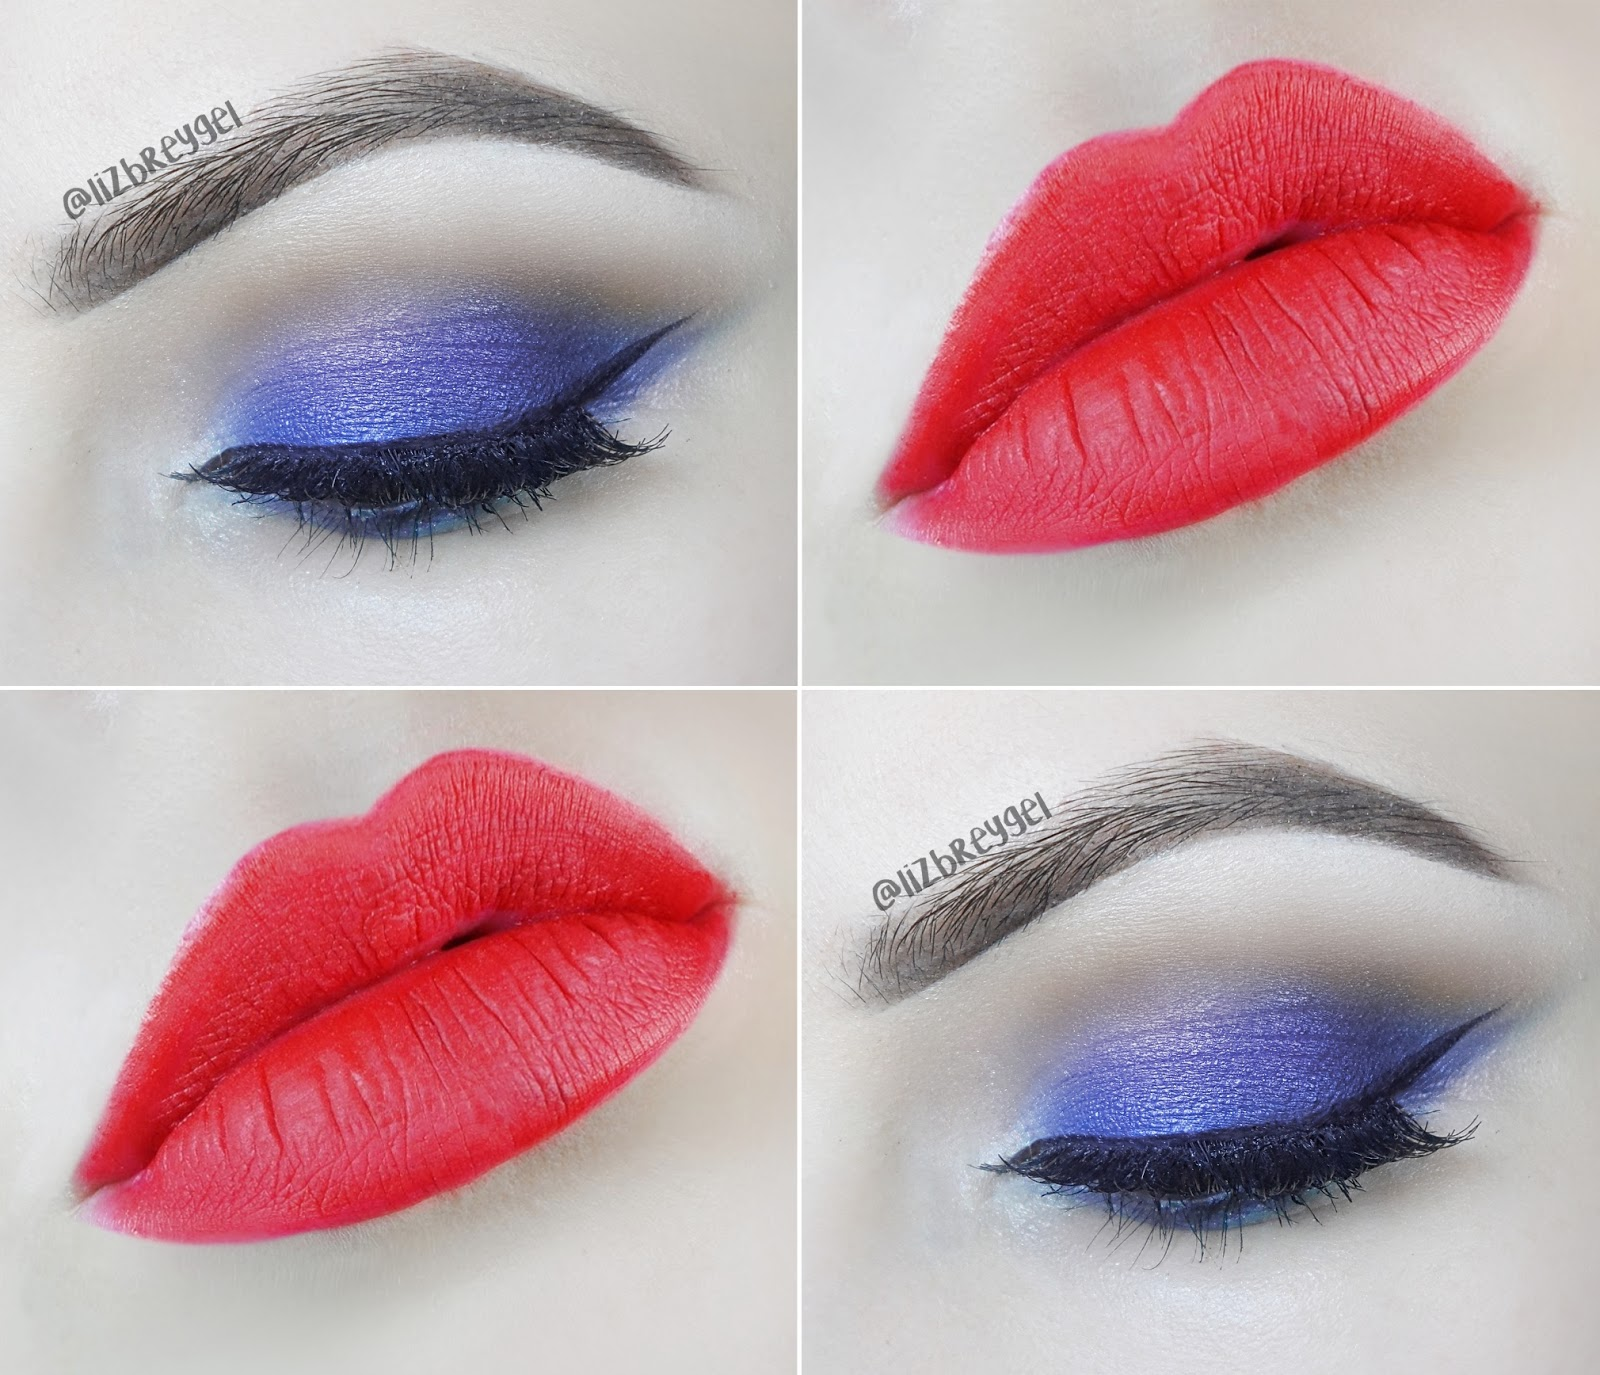 january girl blue smokey eye makeup tutorial step by step pictures red lips